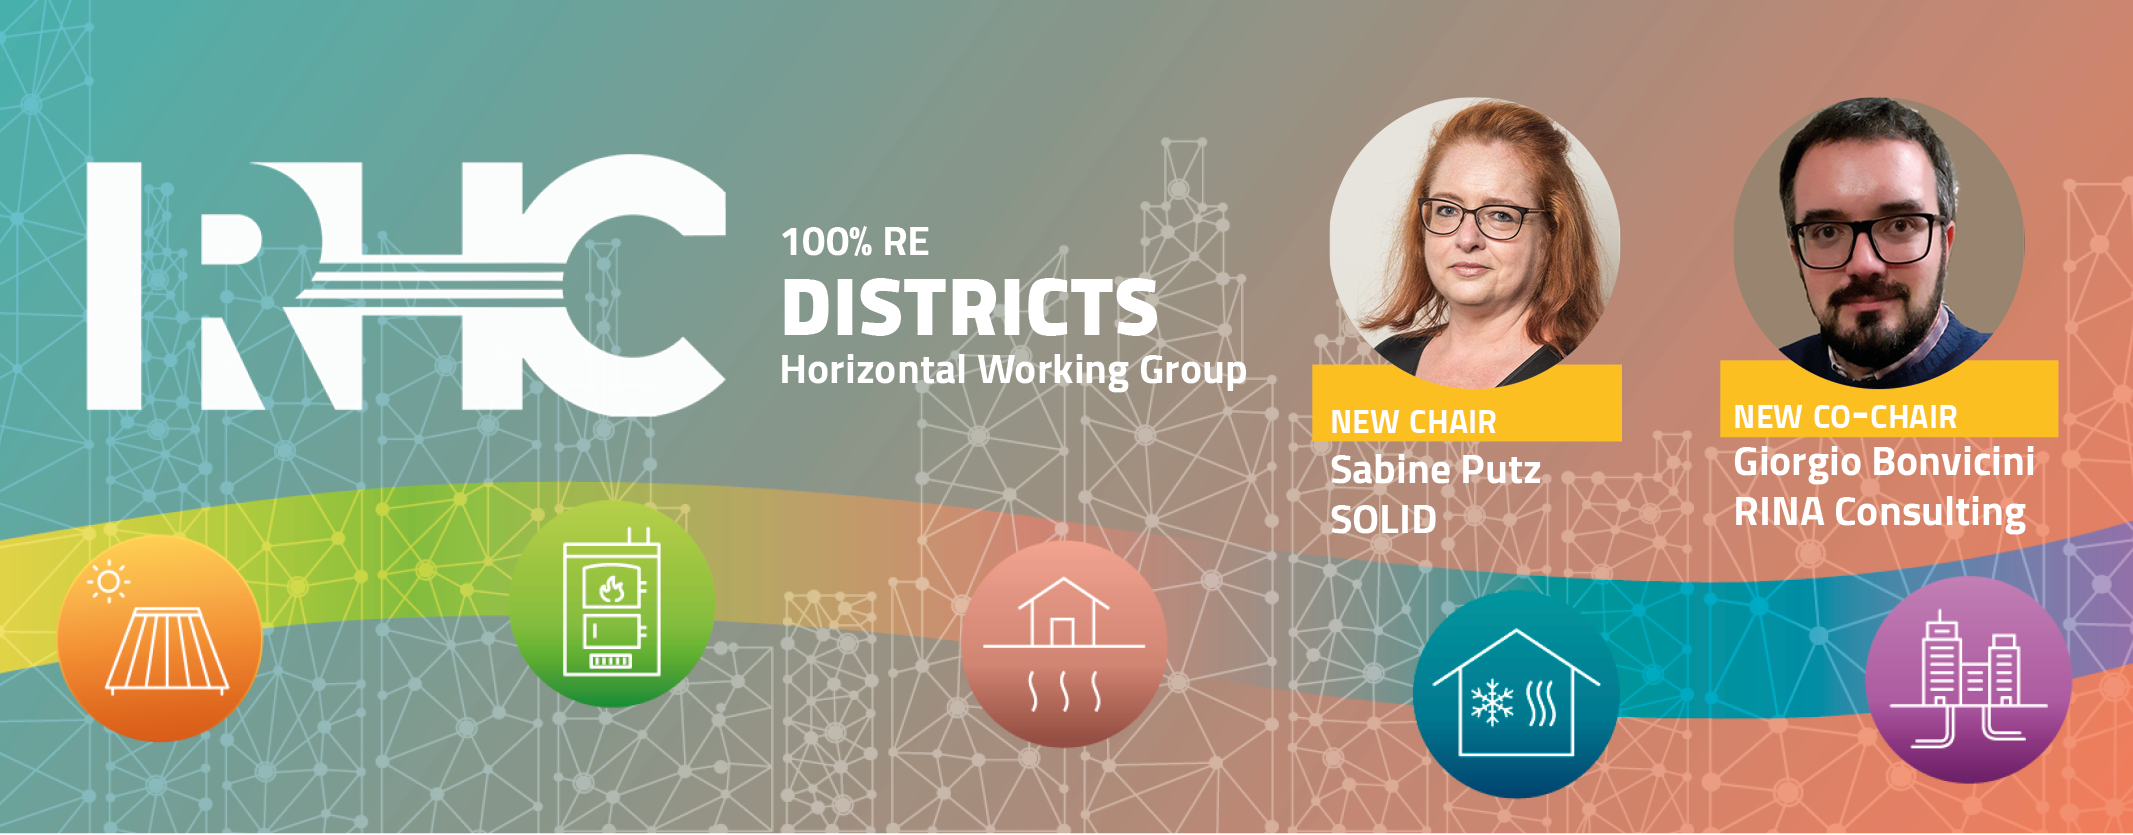 Meet the New  Chair and Co-chair of the 100% RE Districts Horizontal Working Group